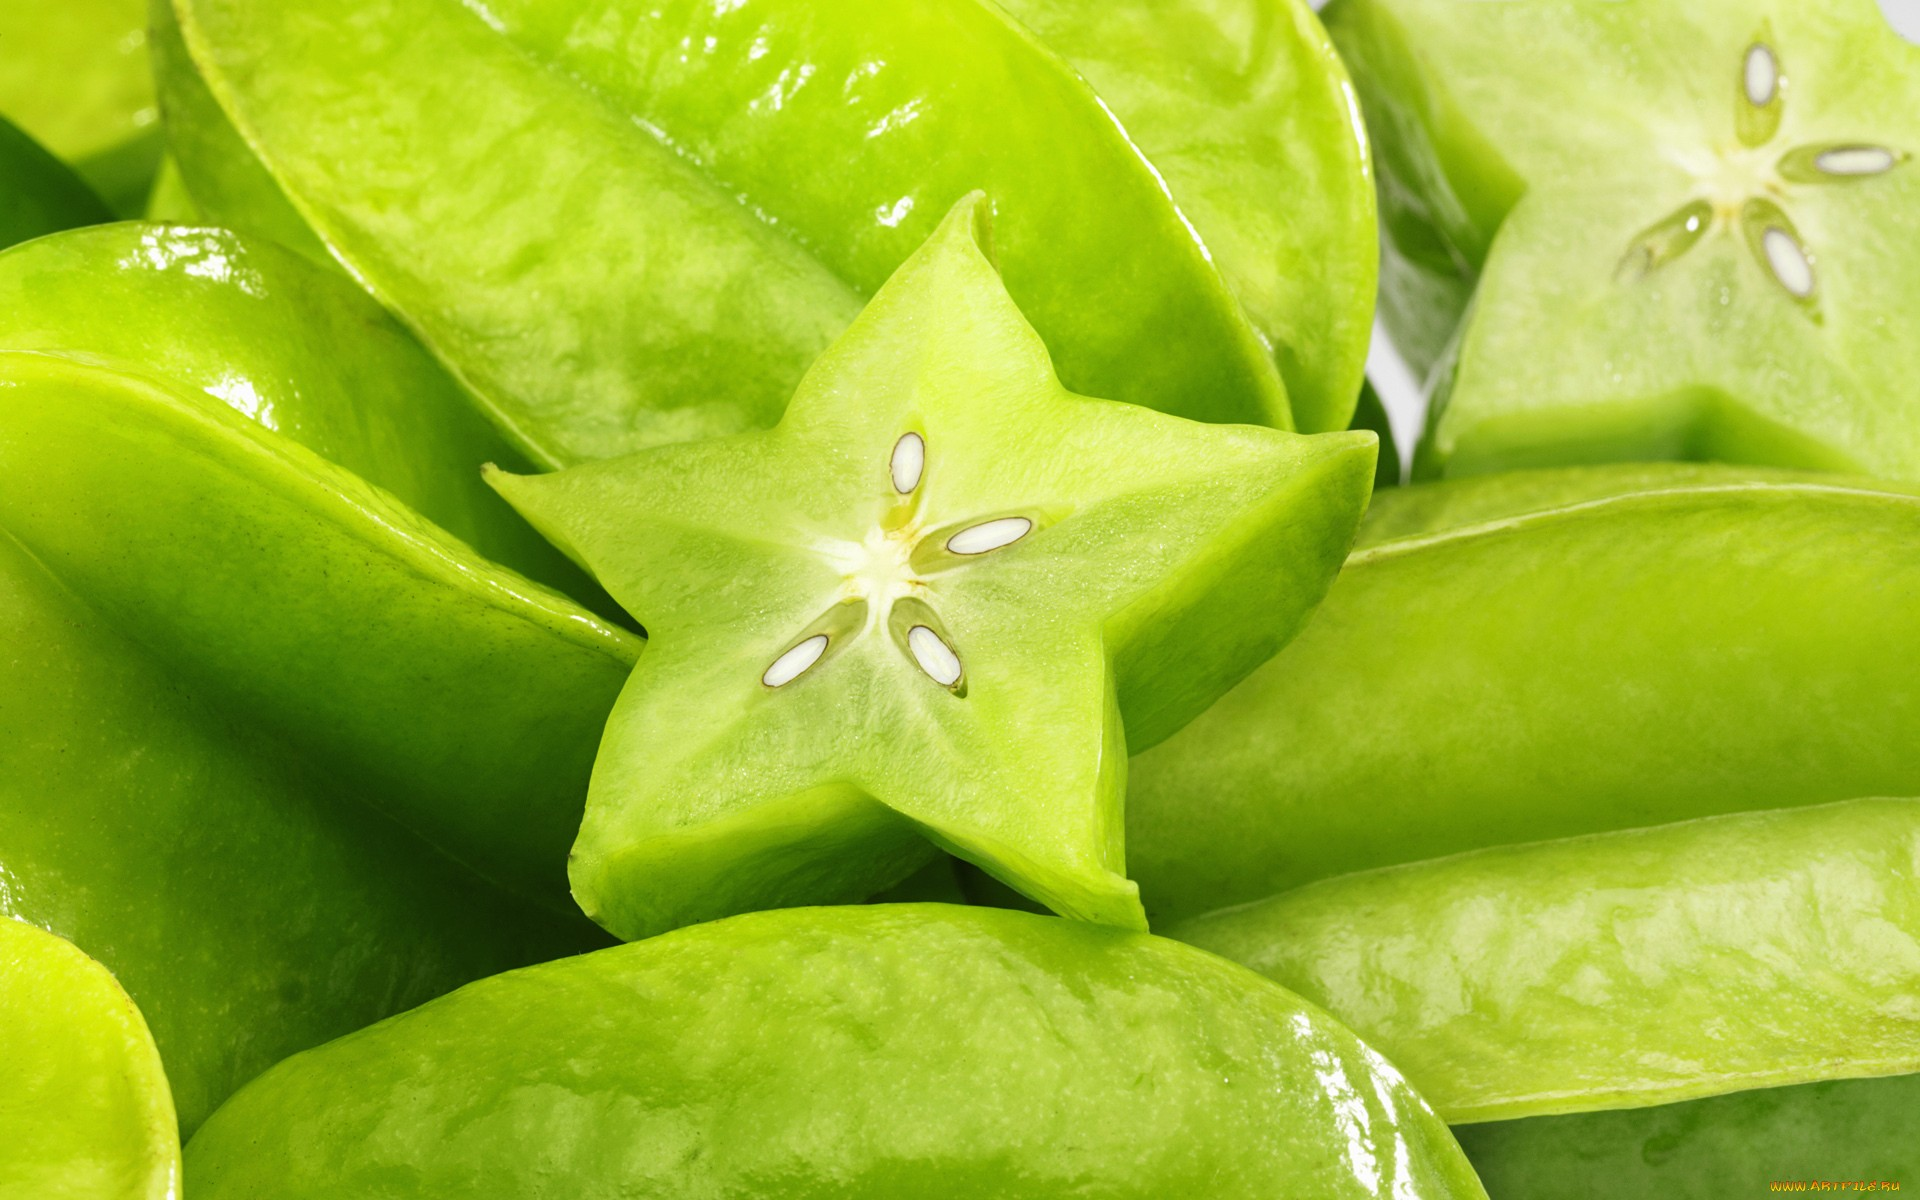 Star Fruit Computer Wallpapers Desktop Backgrounds 1920x1200 ID 1920x1200